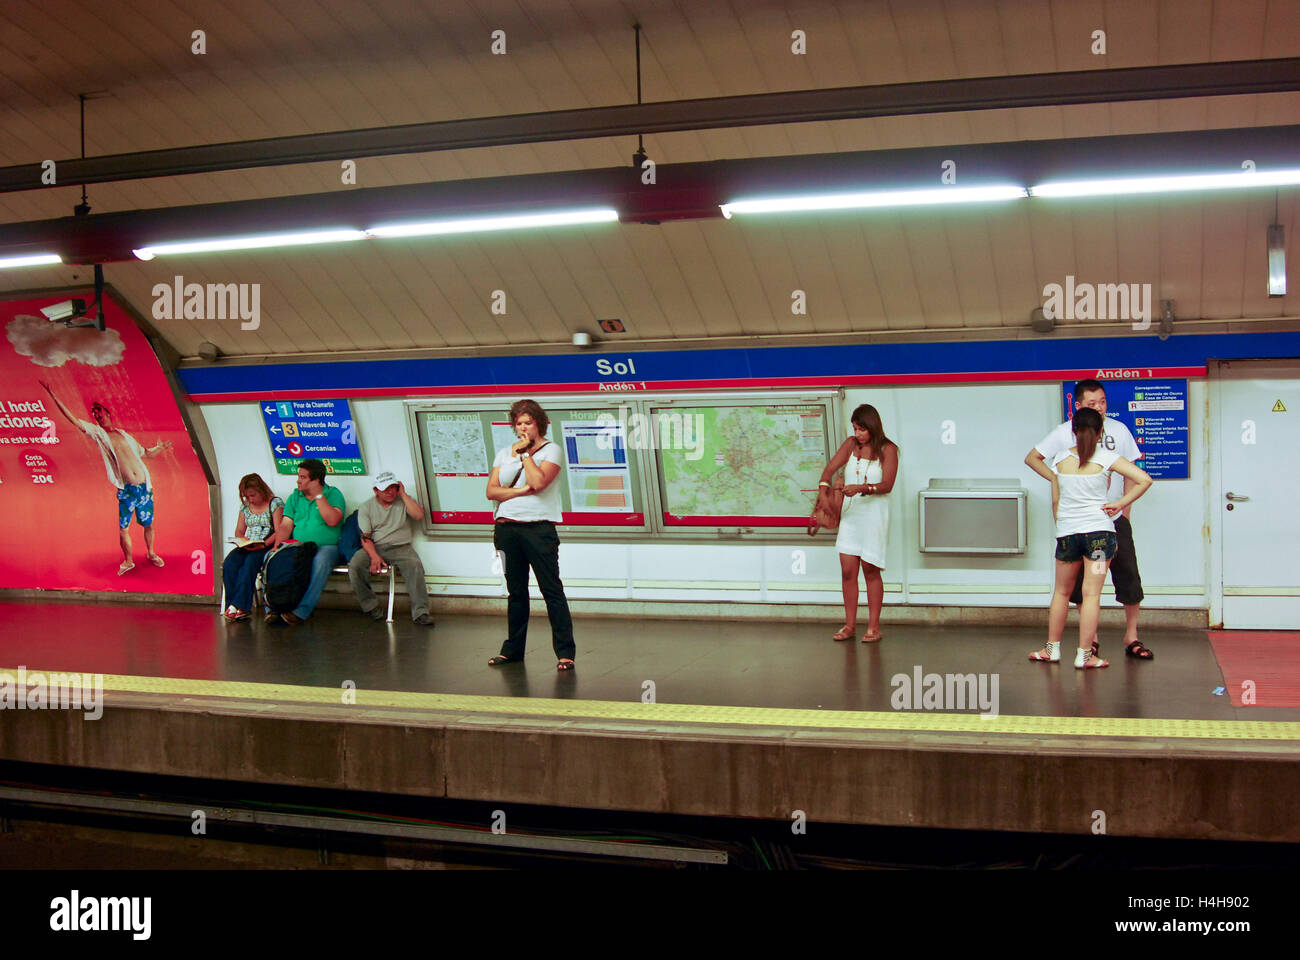 People wait for their train at a Subway station in Madrid,Spain - Stock Image